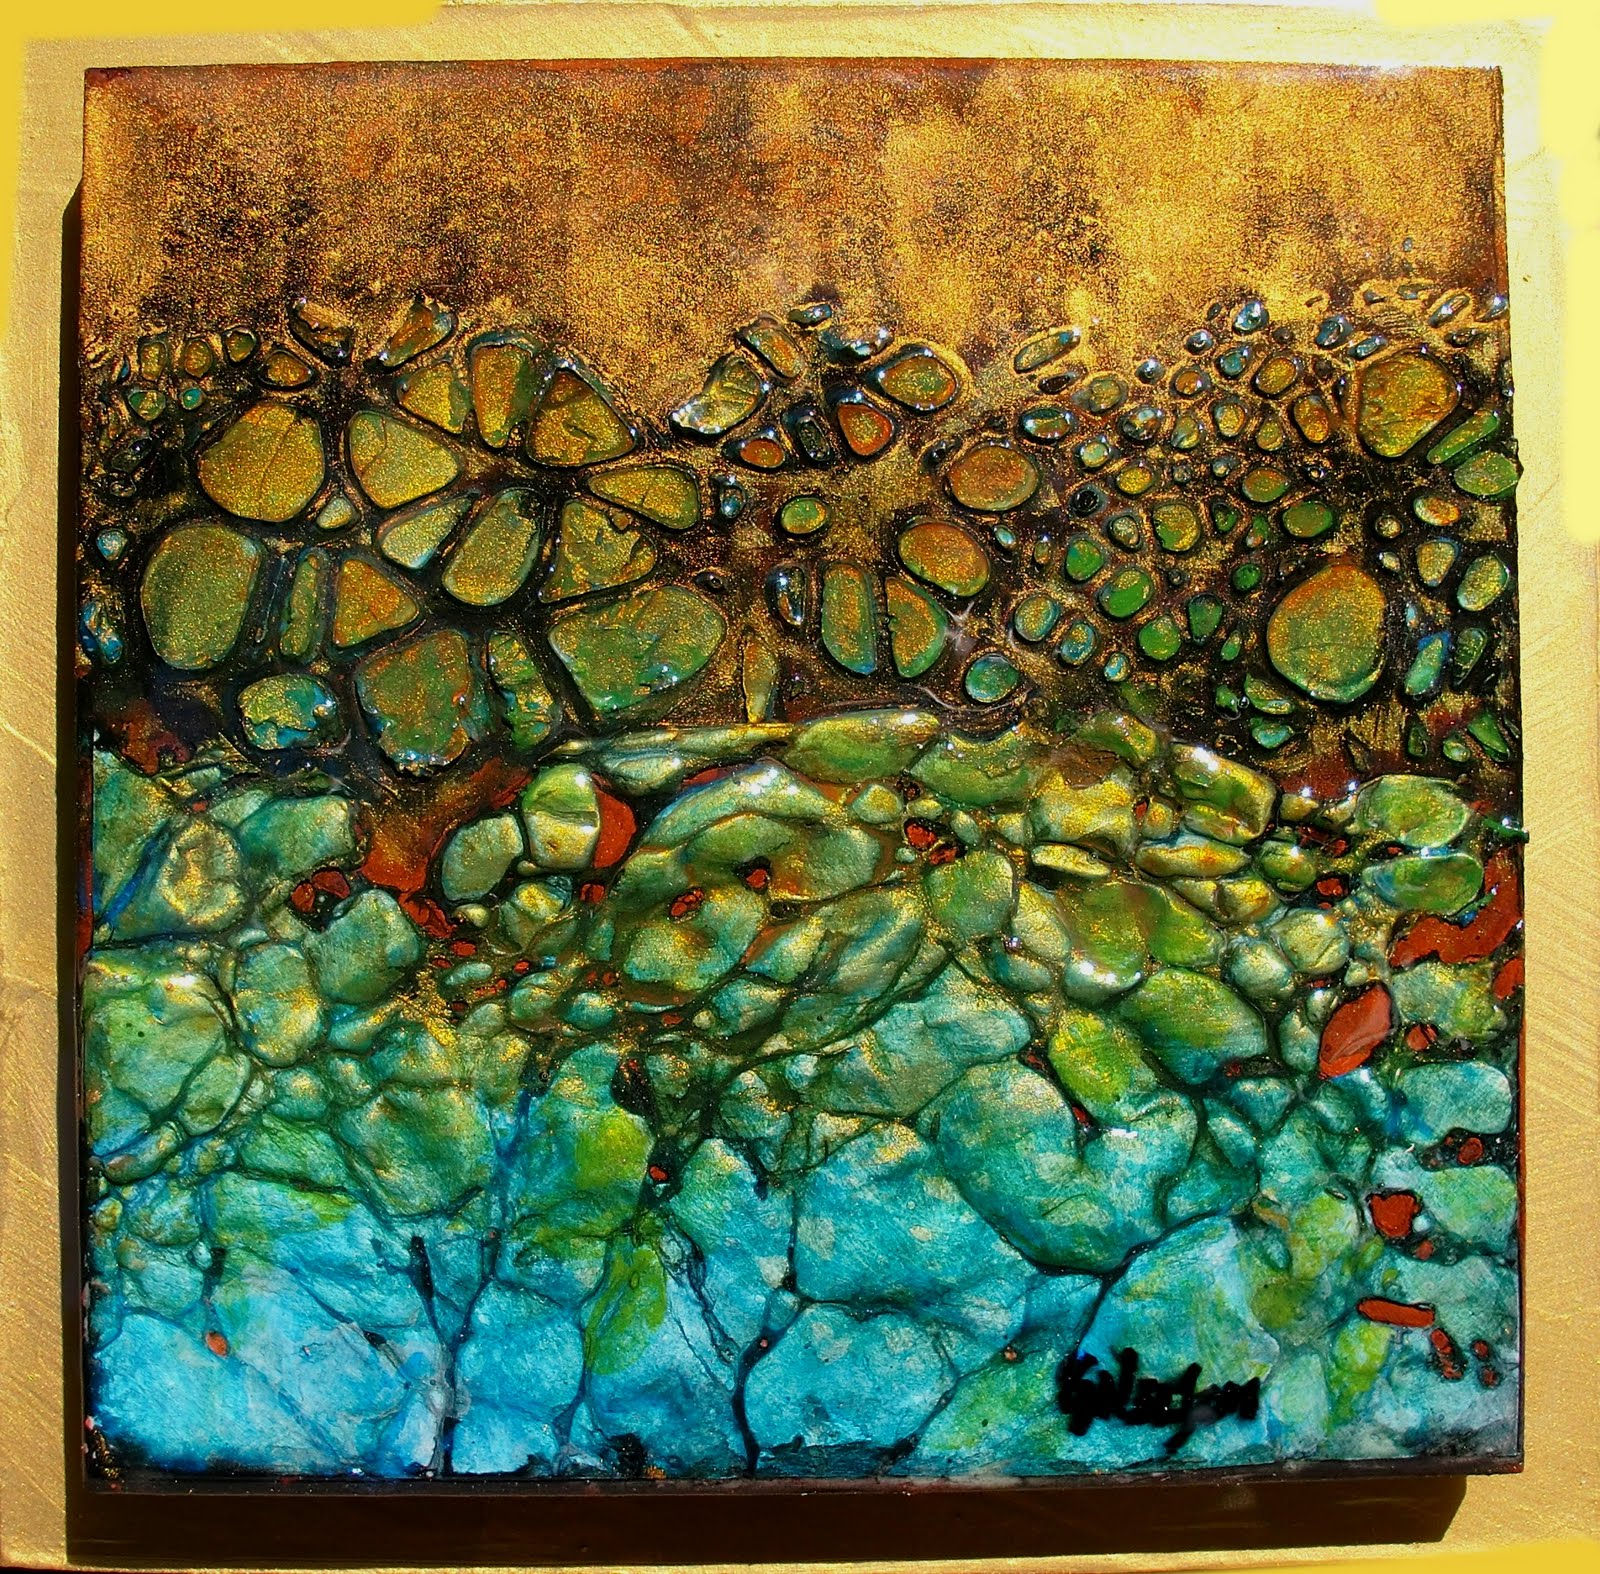 Epoxy Resin Artwork : Carol nelson fine art quot tidepool daily painter